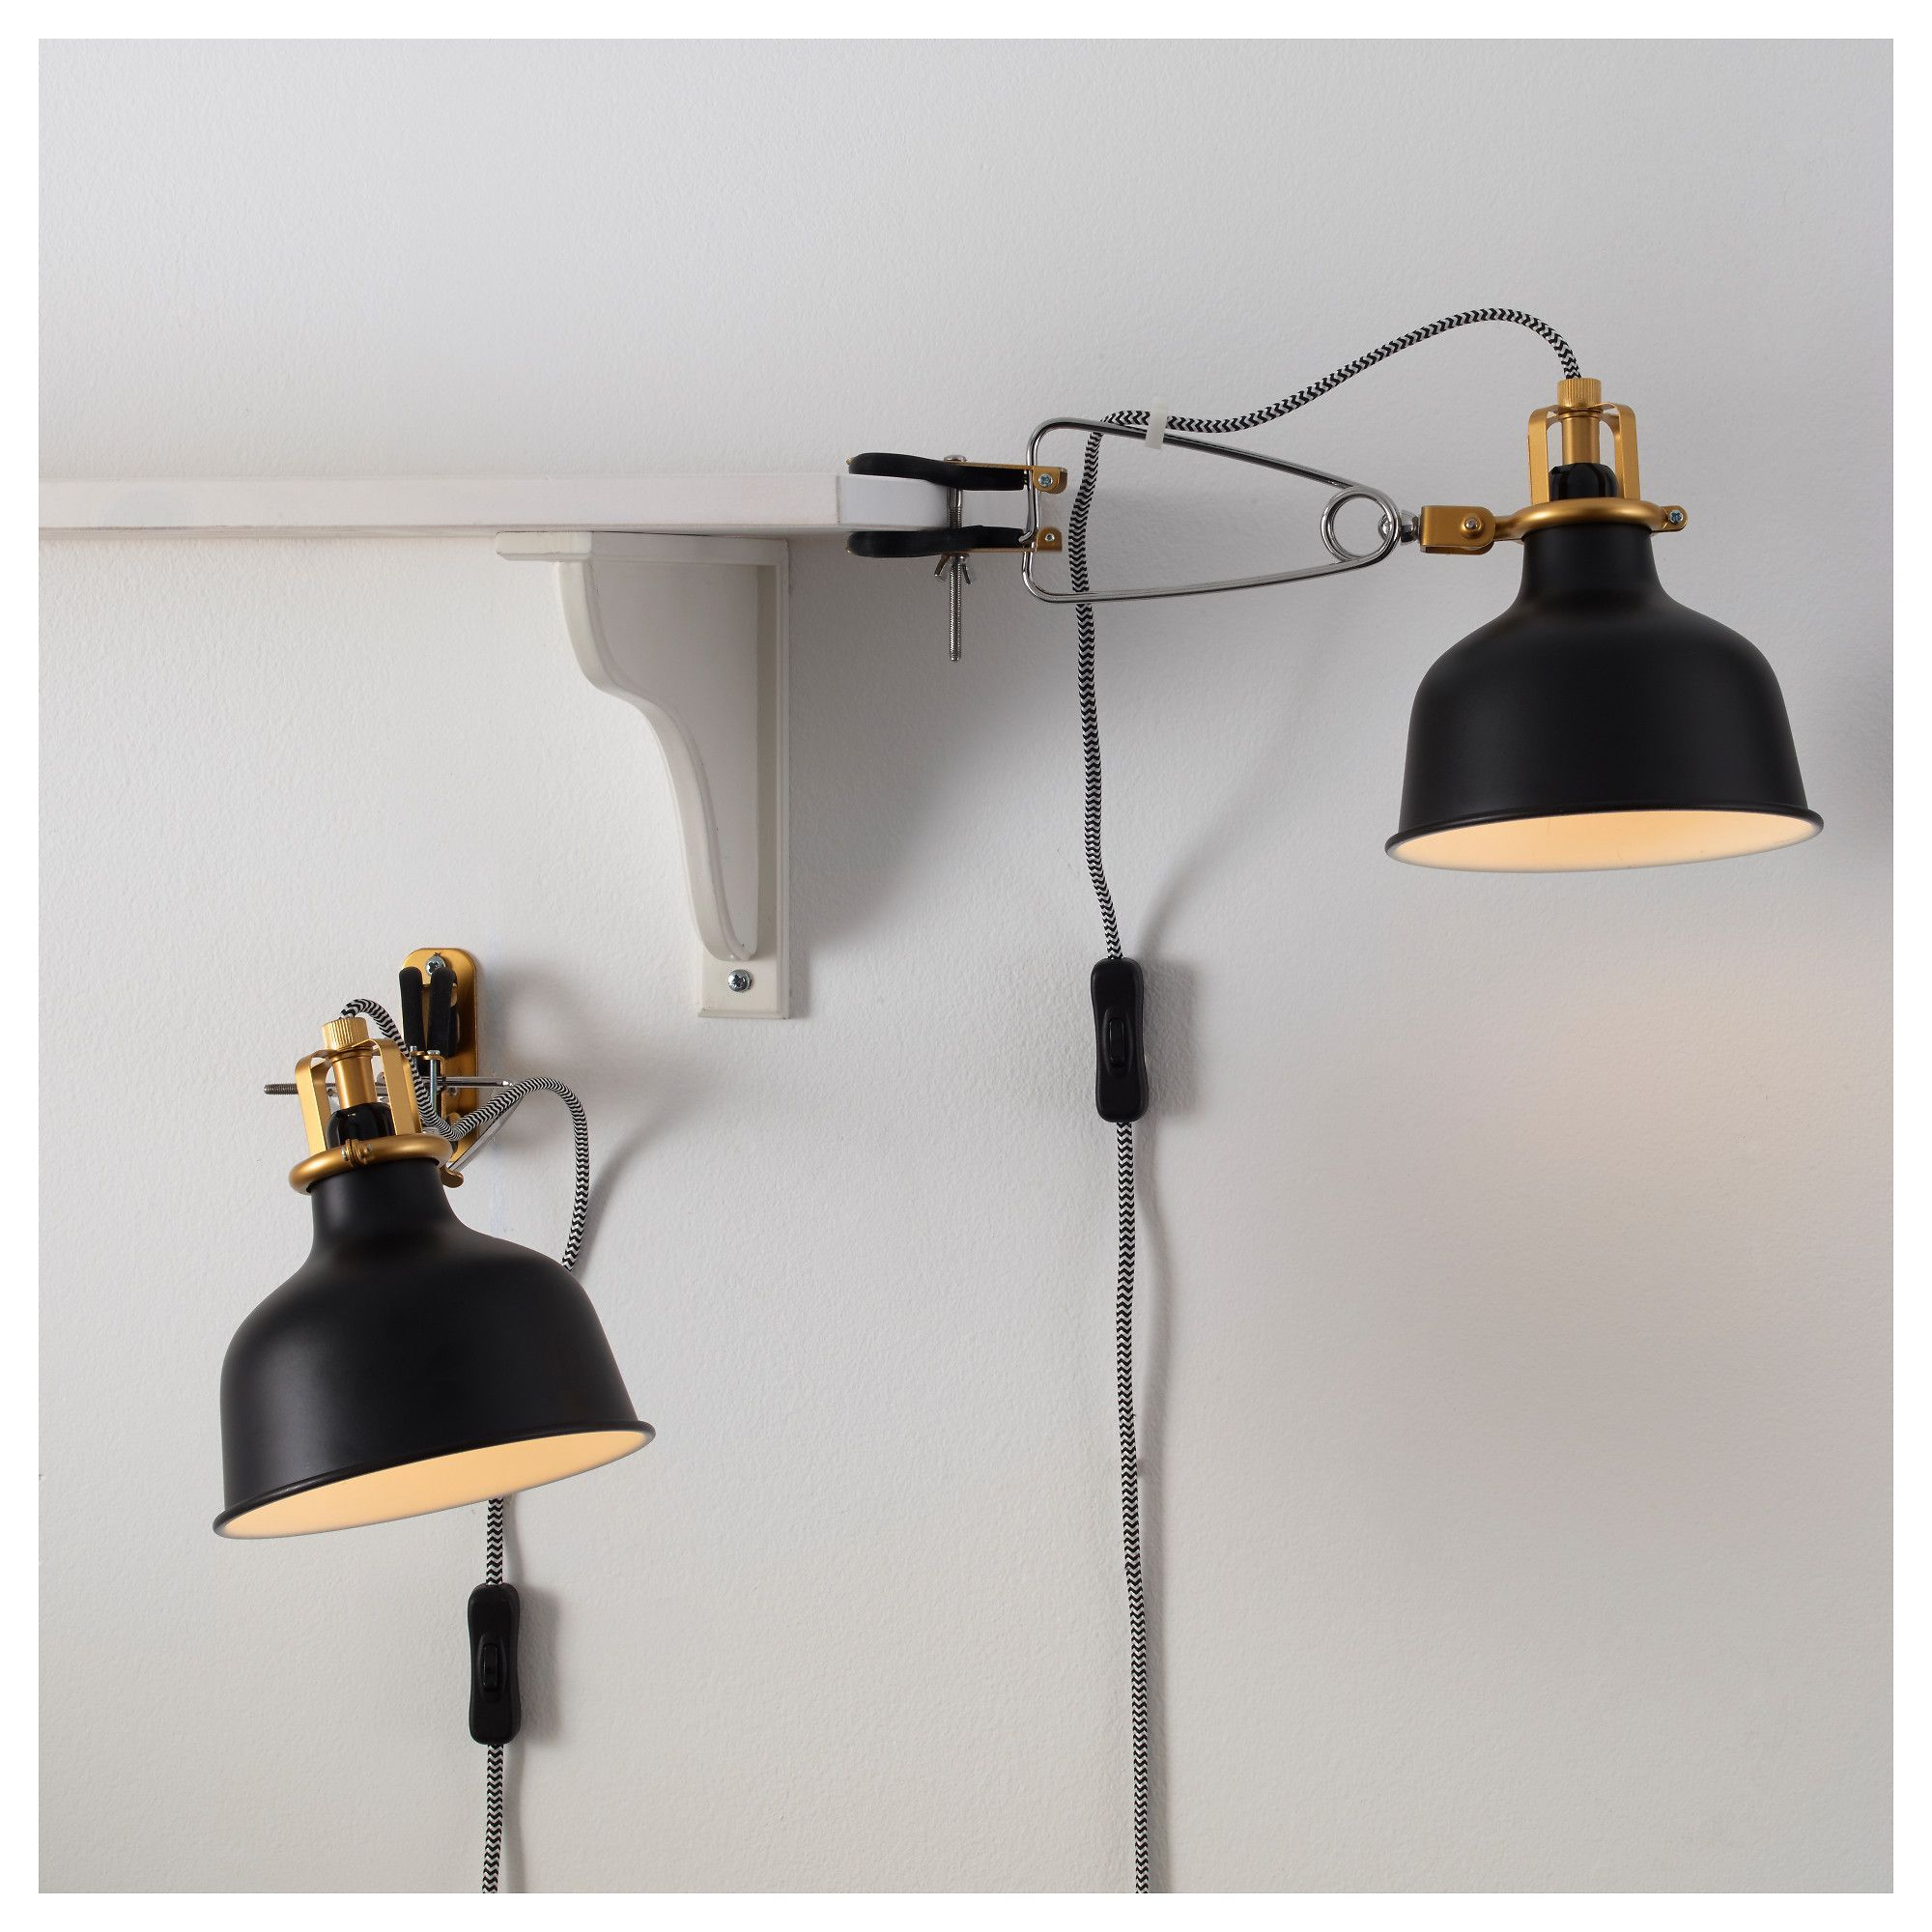 Picture Lights Clamp Lamps IKEA